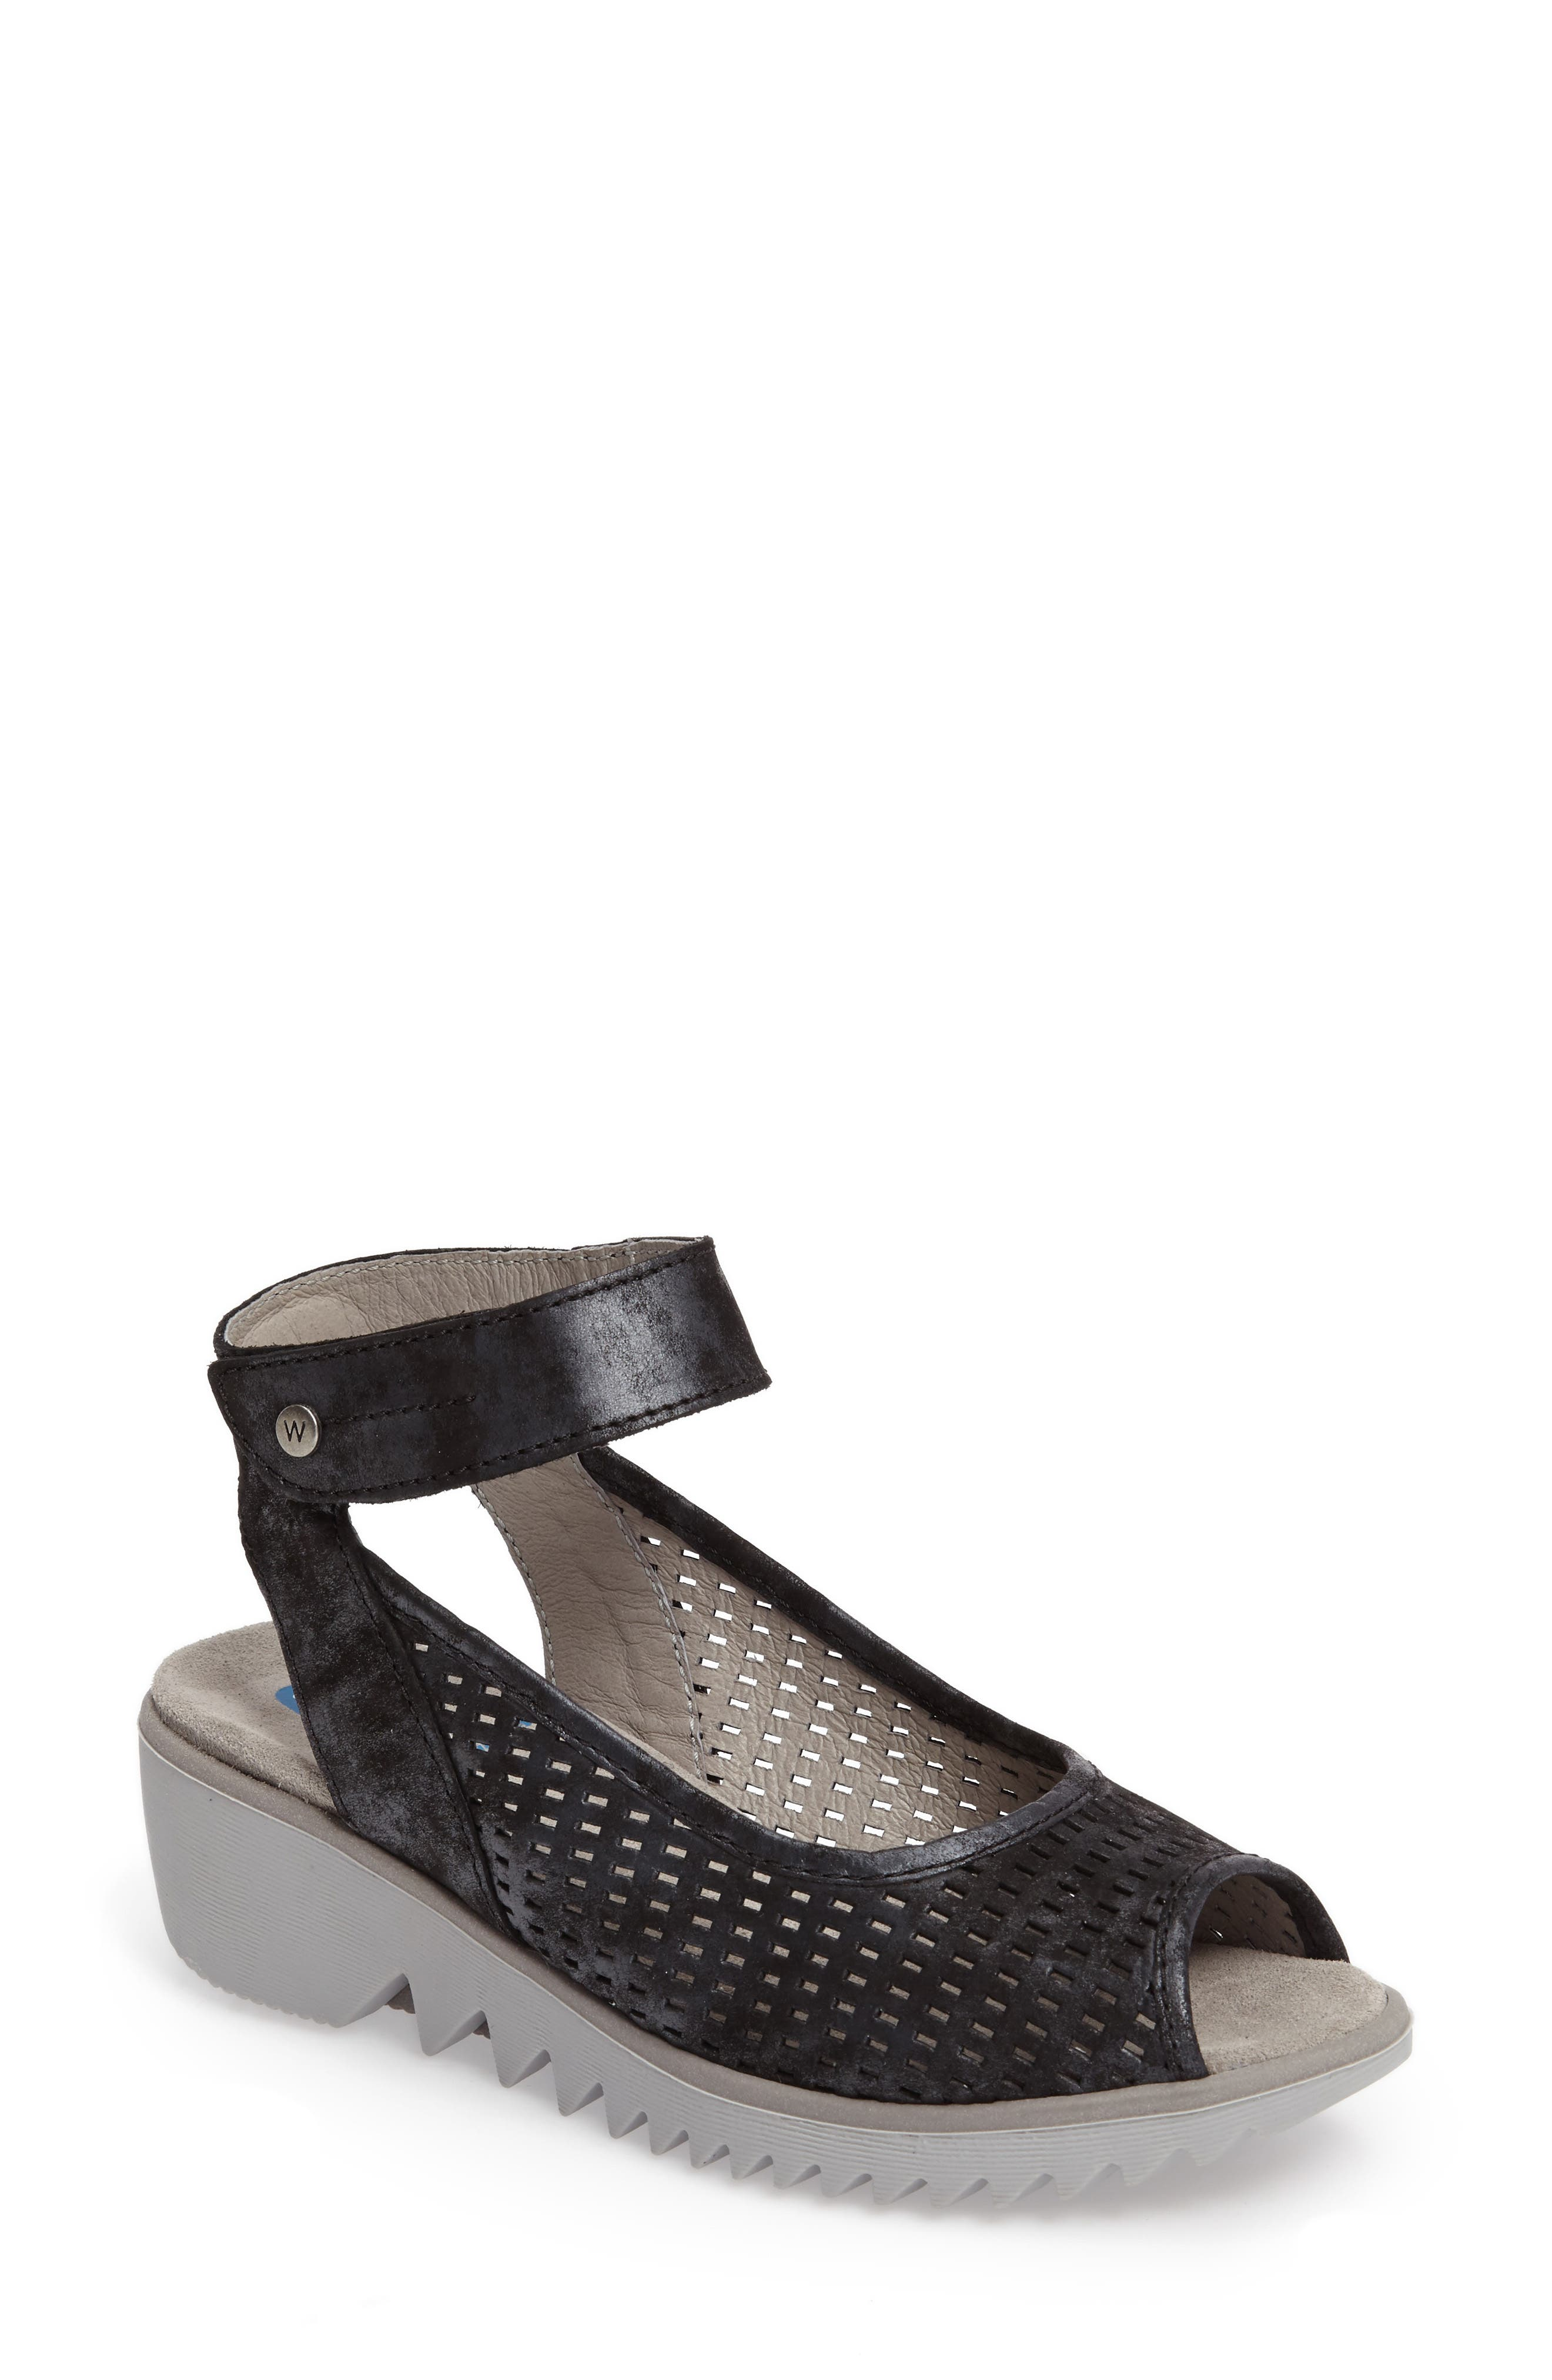 Frosty Ankle Strap Wedge Sandal,                             Main thumbnail 1, color,                             001